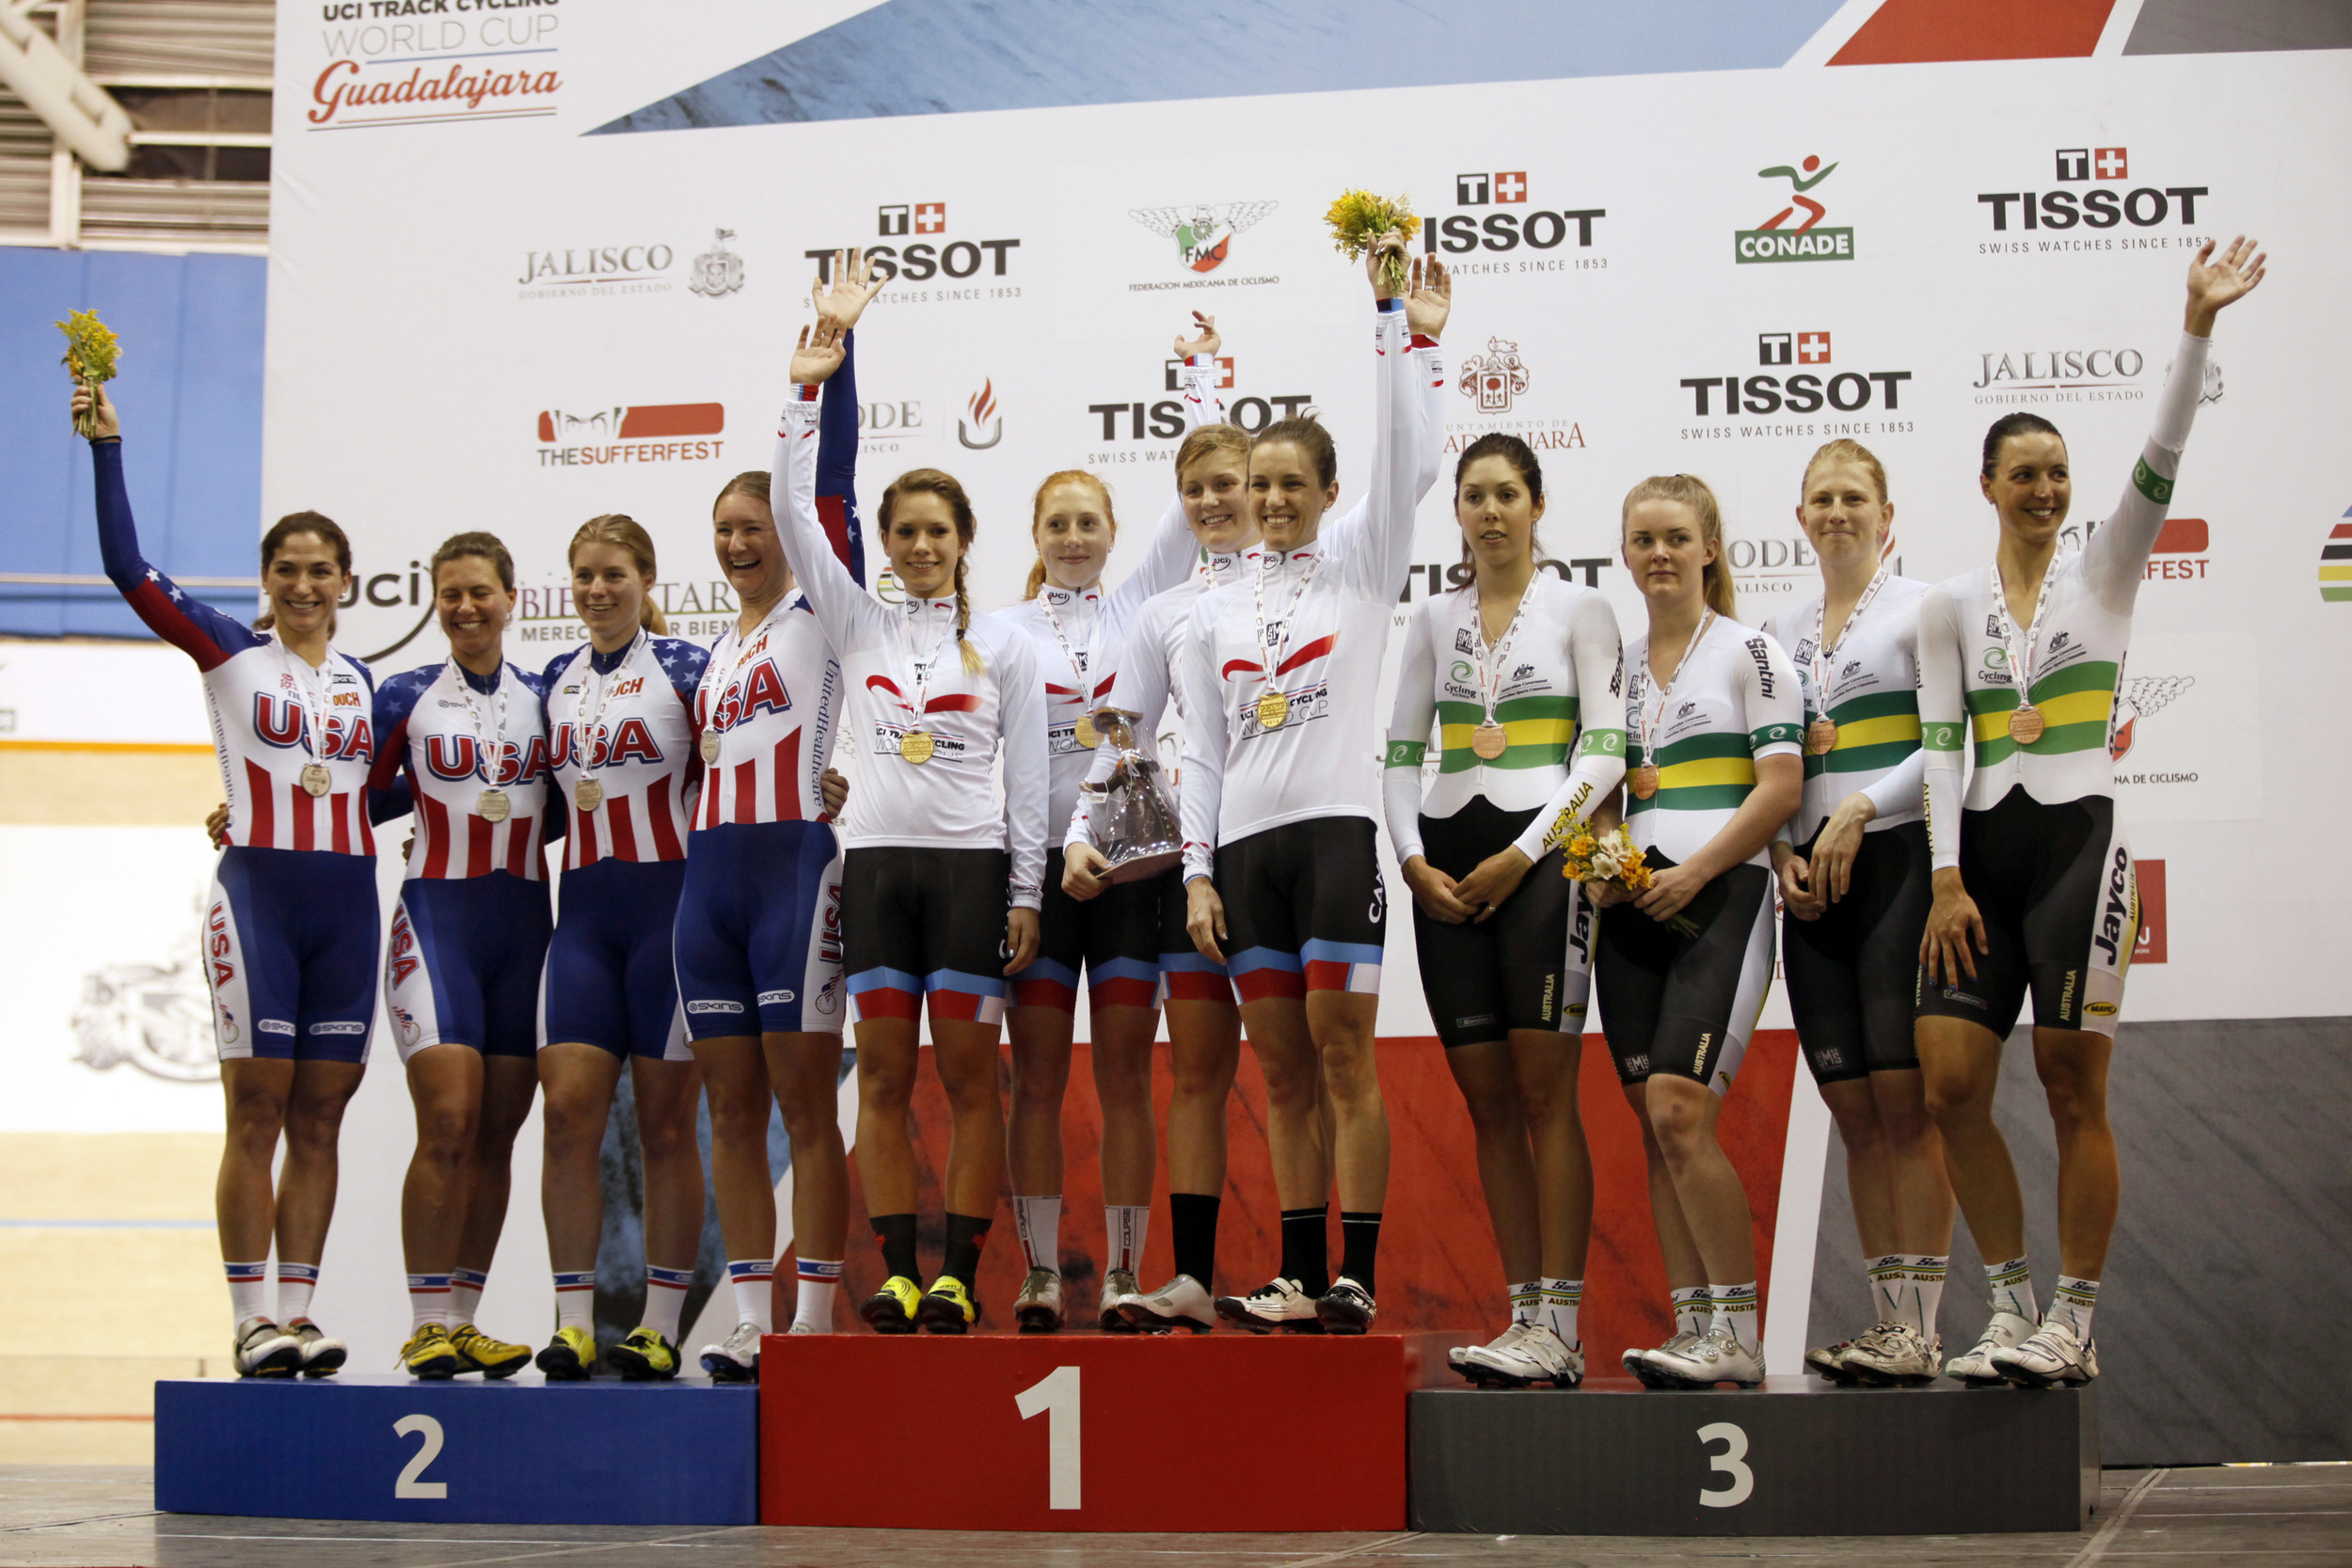 2014 Track World Cup – Guadalajara